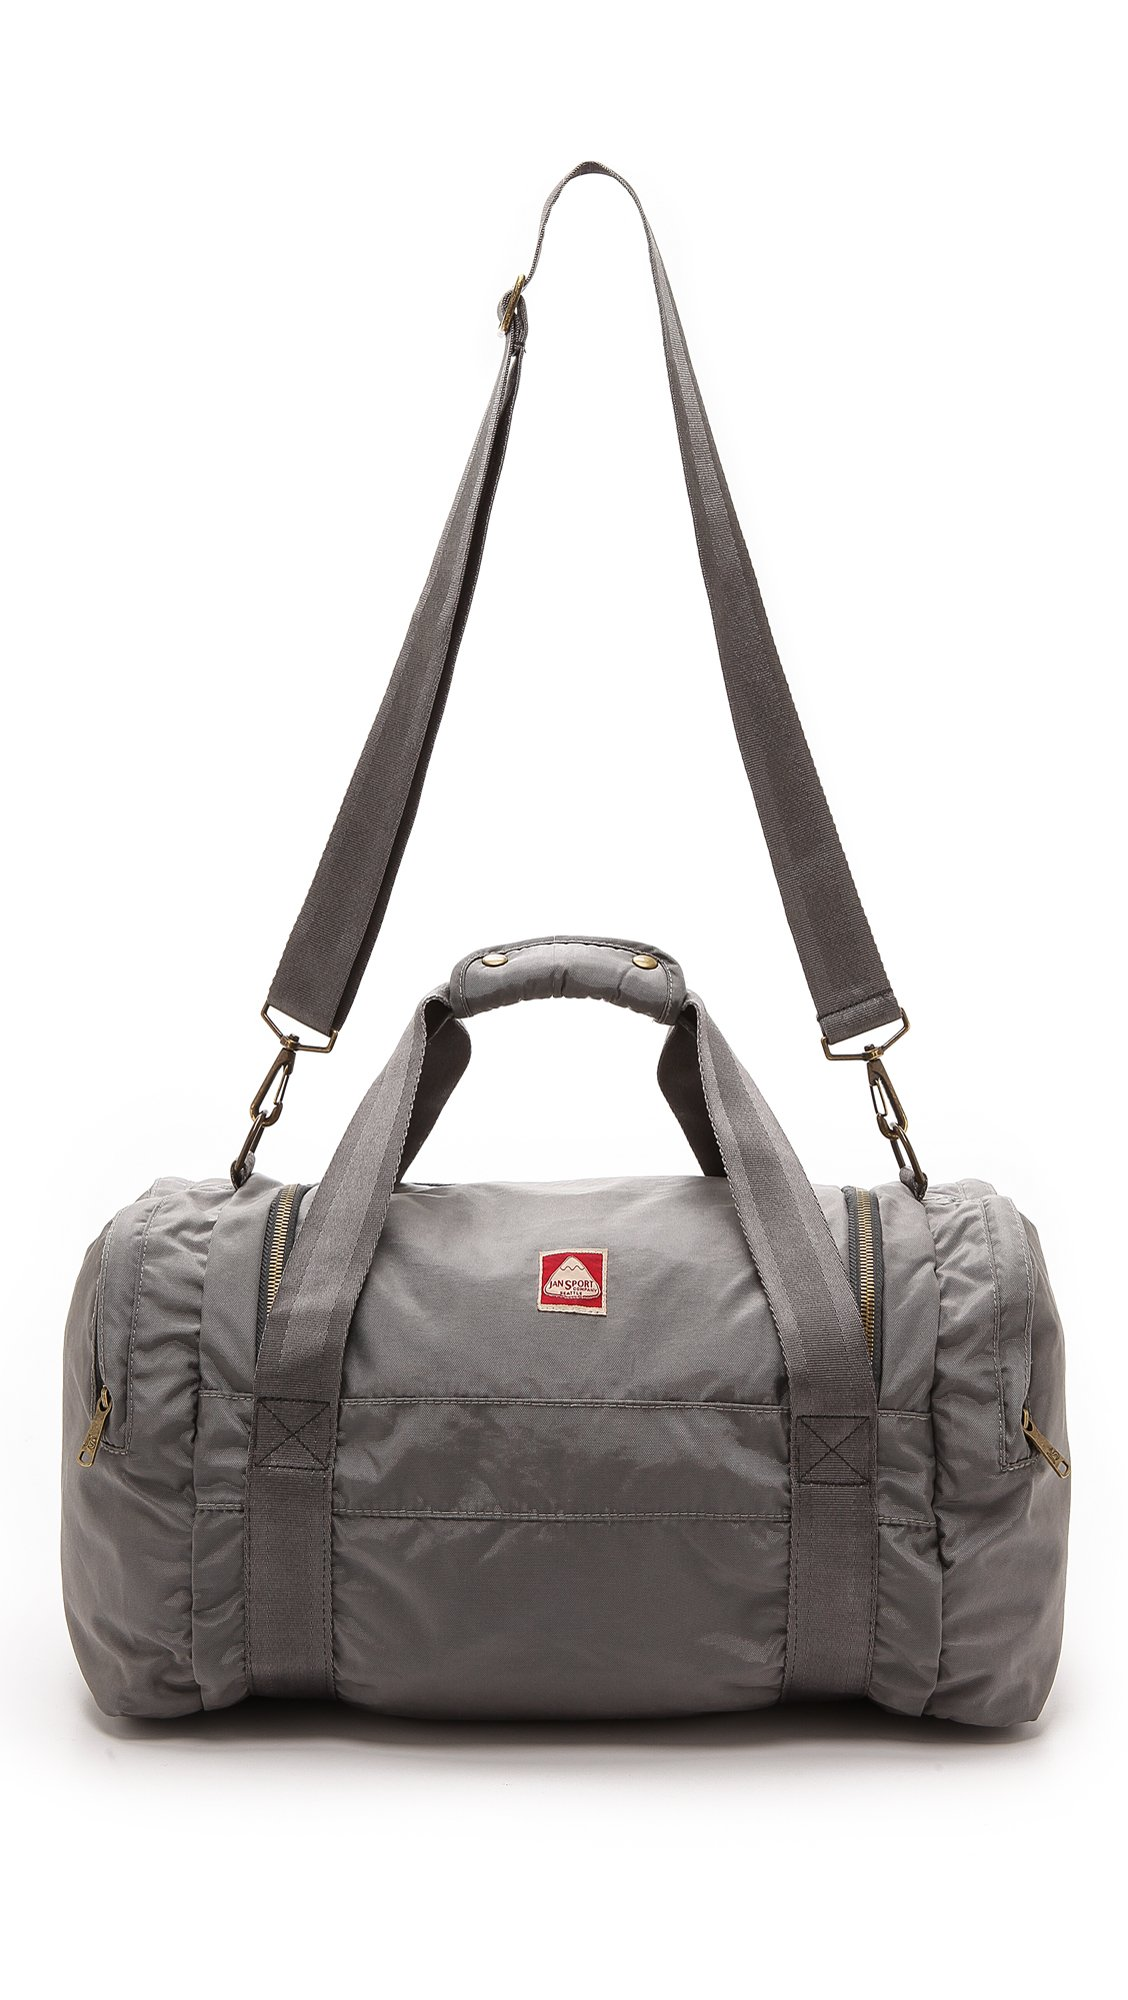 8bcc8a5b22a8 Lyst - Jansport Heritage Hipster Duffel in Gray for Men